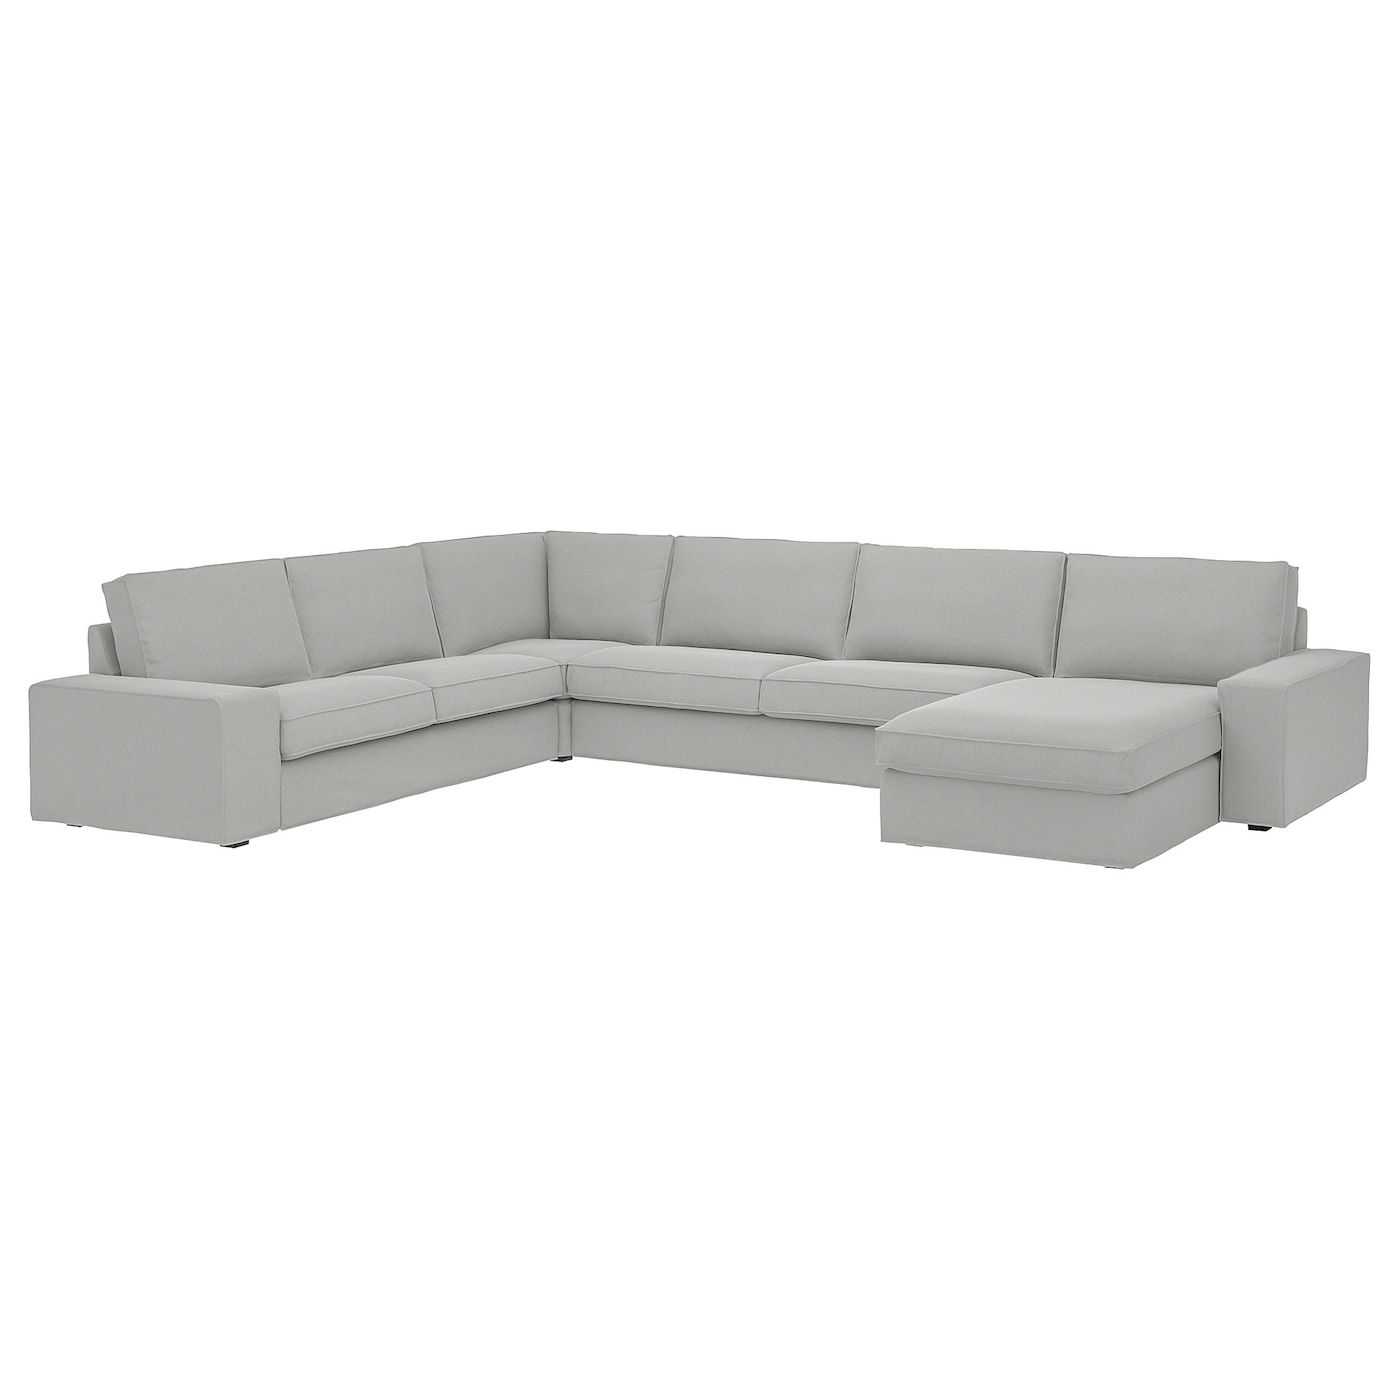 Kivik Sectional 5 Seat With Chaise Tallmyra White Black Ikea In 2020 Sectional Chaise Deep Seated Sectional